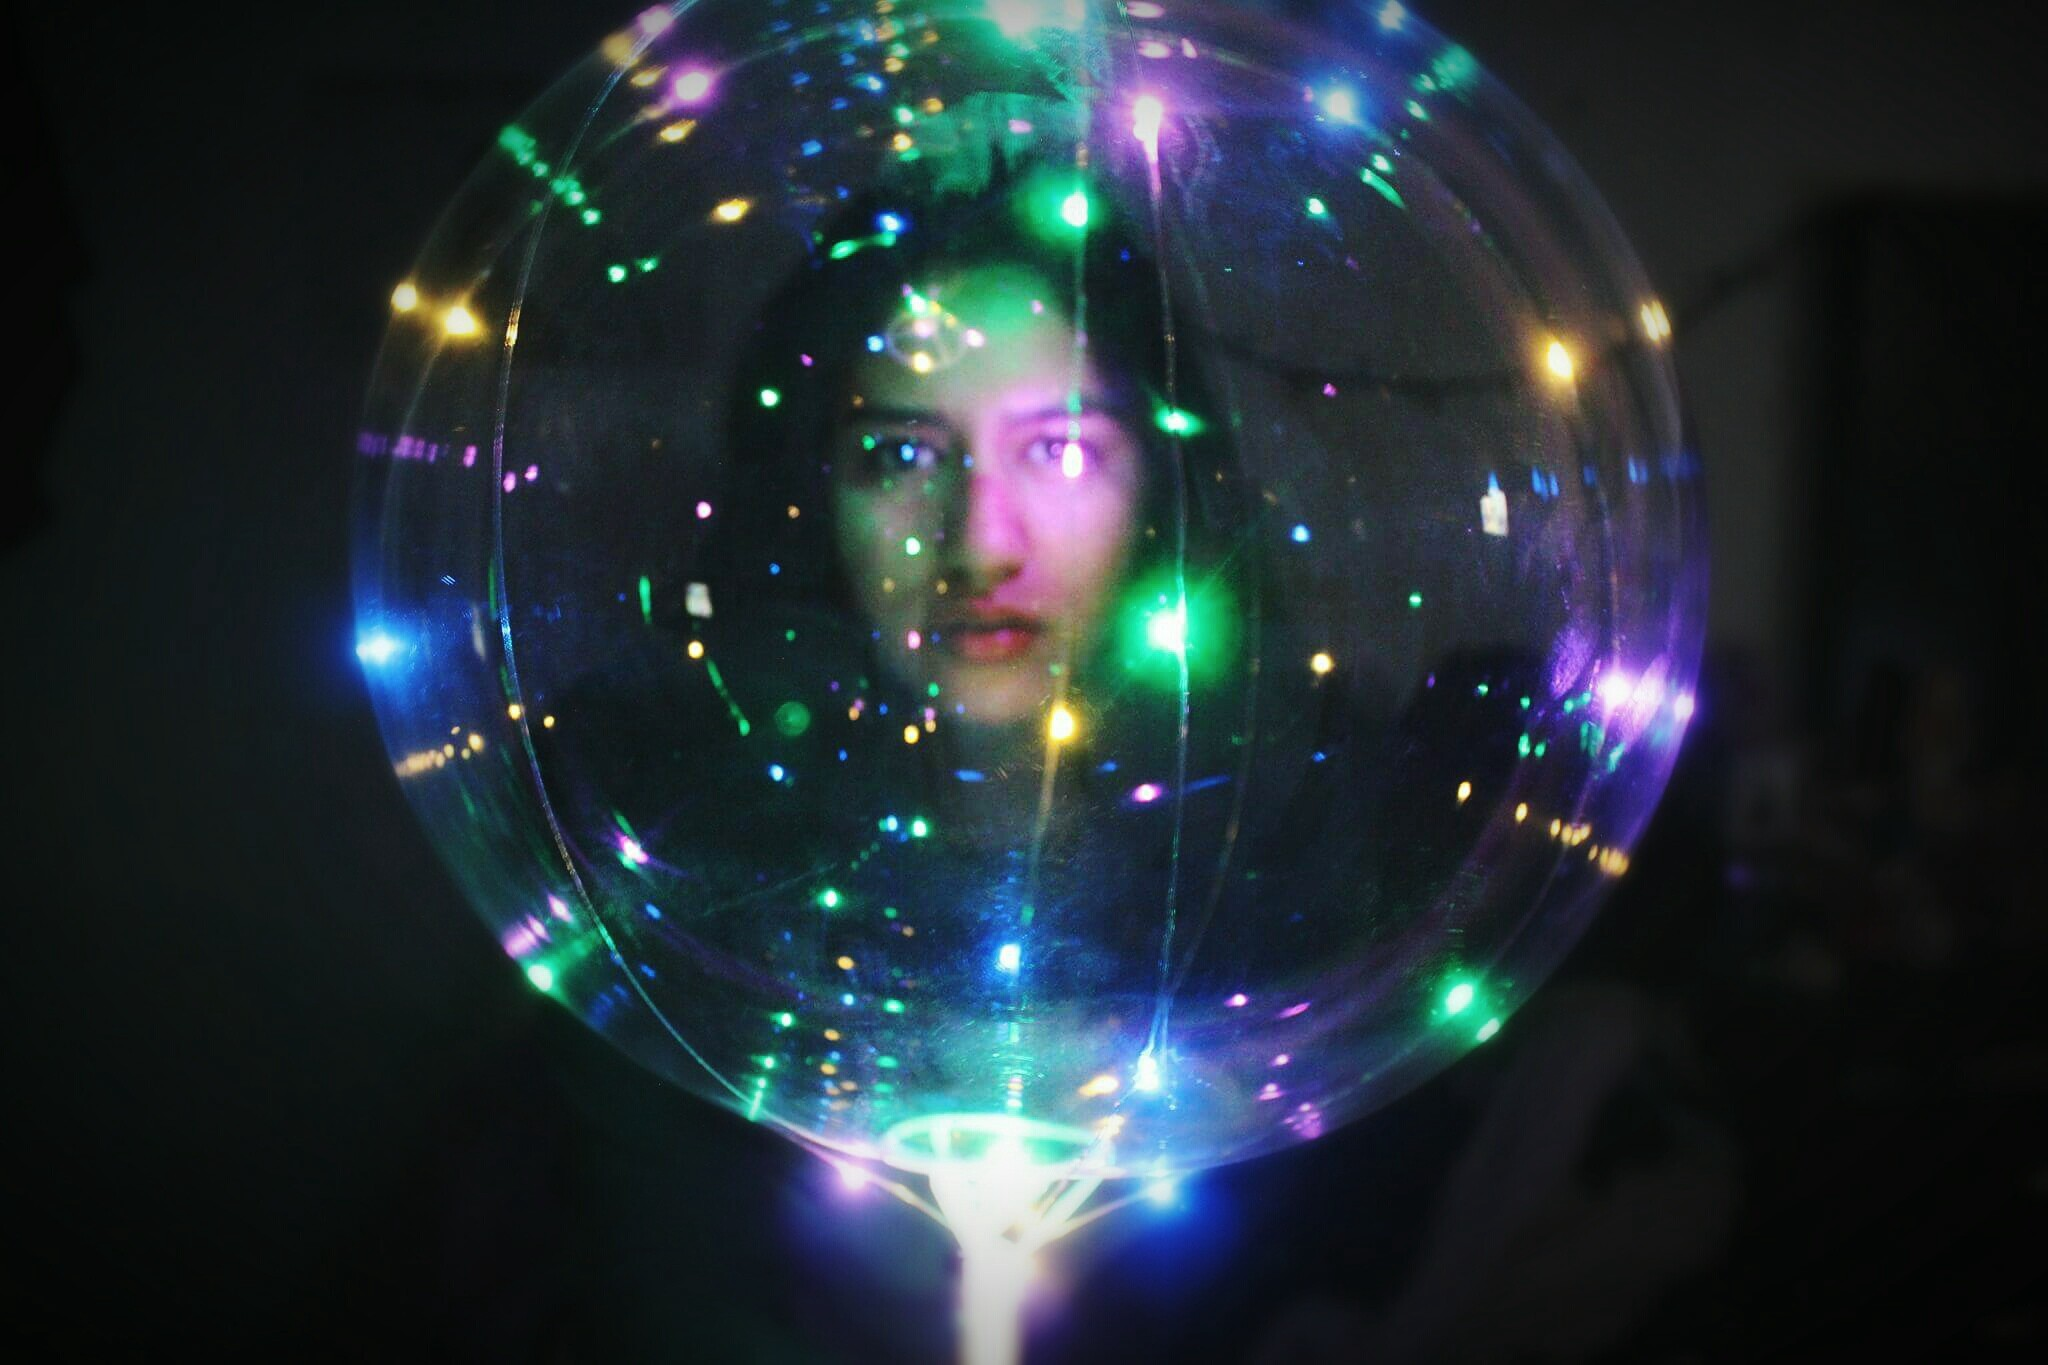 A photo of a woman with an illuminated transparent ball in a dark room.